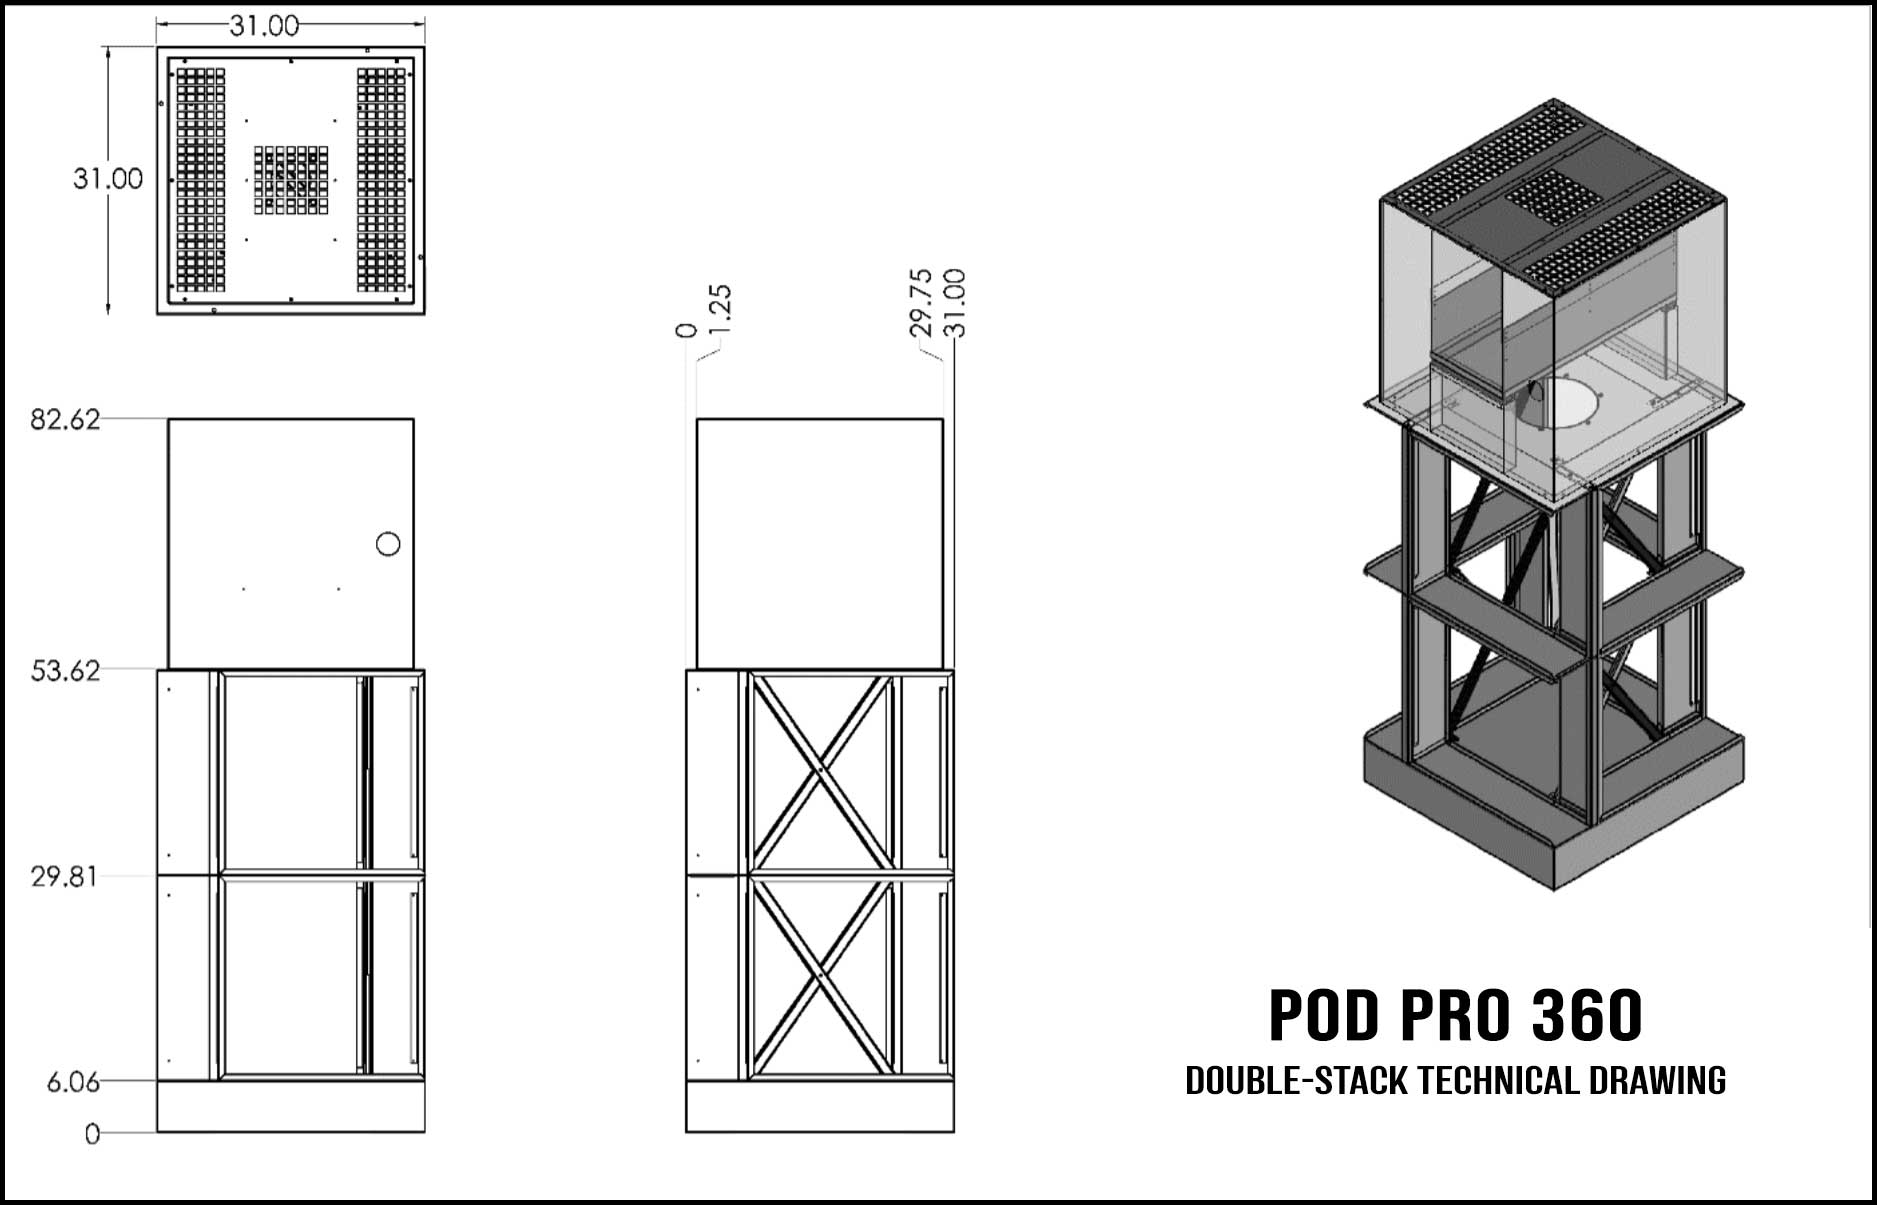 Pod Pro 360 Double-Stack Technical Drawing